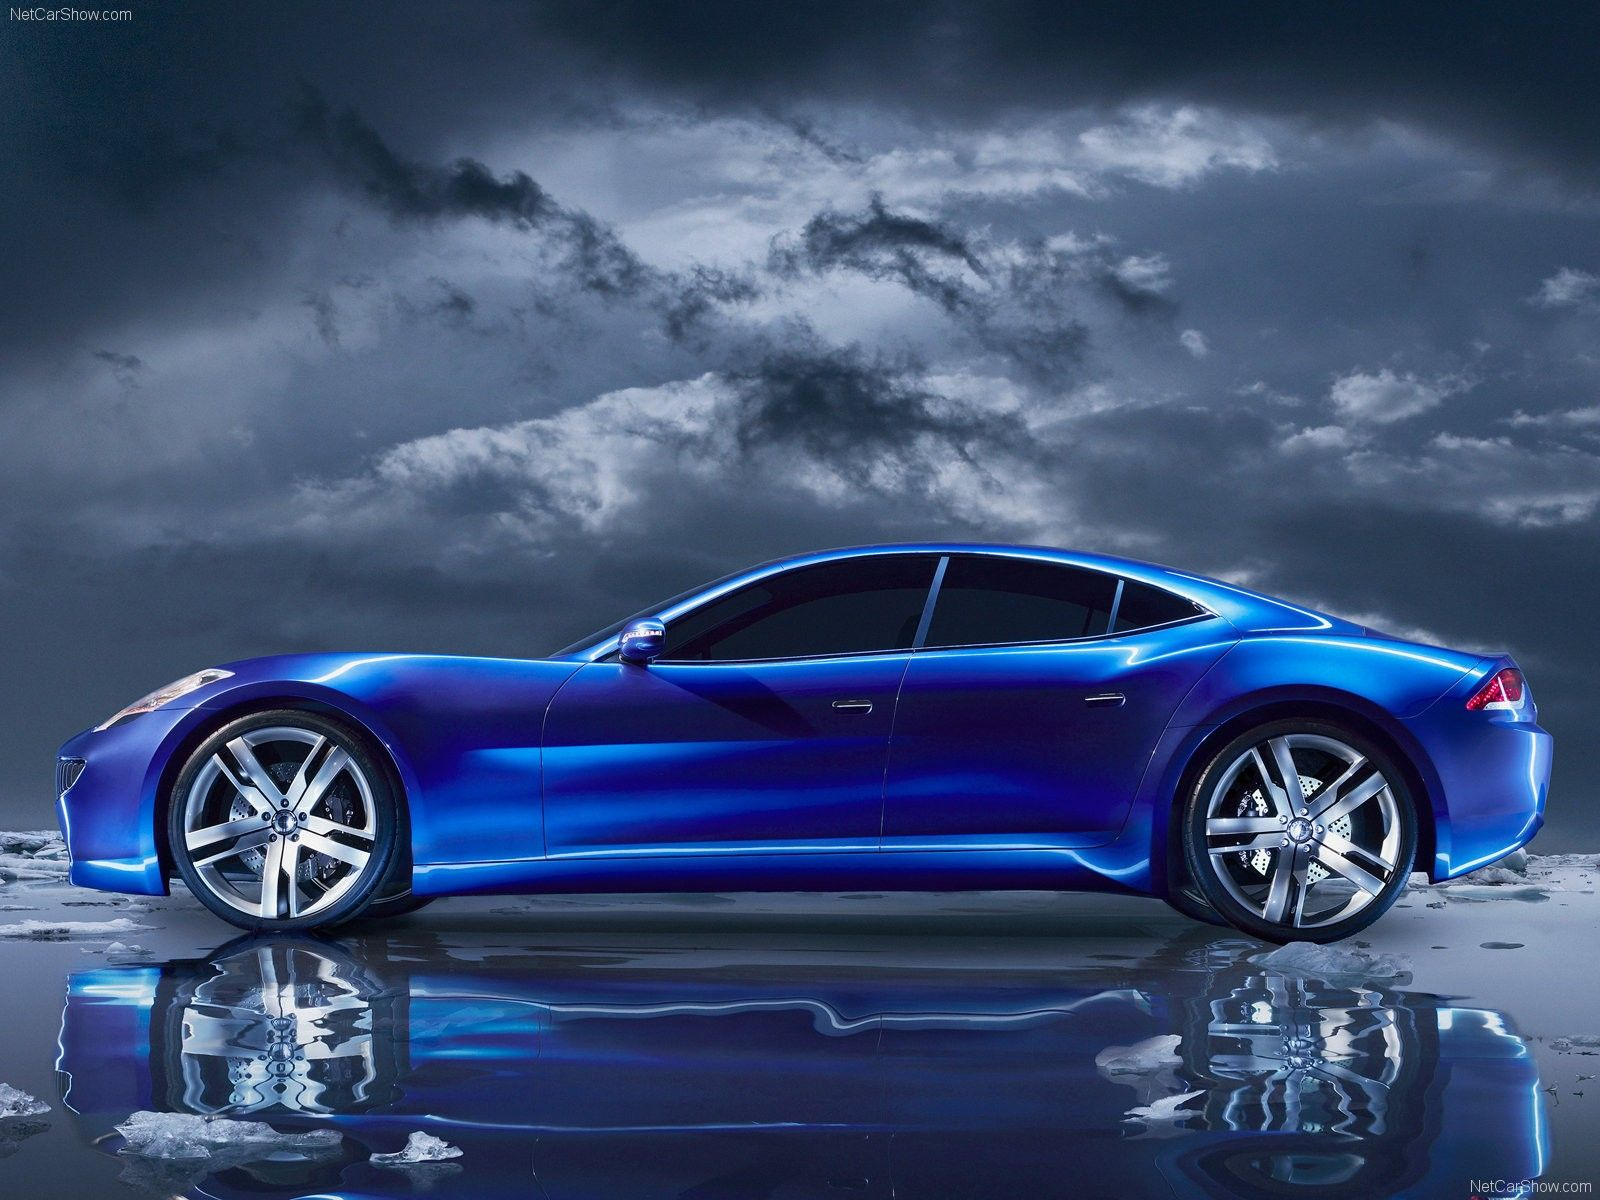 blue-car-photography-wallpapers.jpg 1,600×1,200 pixels | Blue you're ...